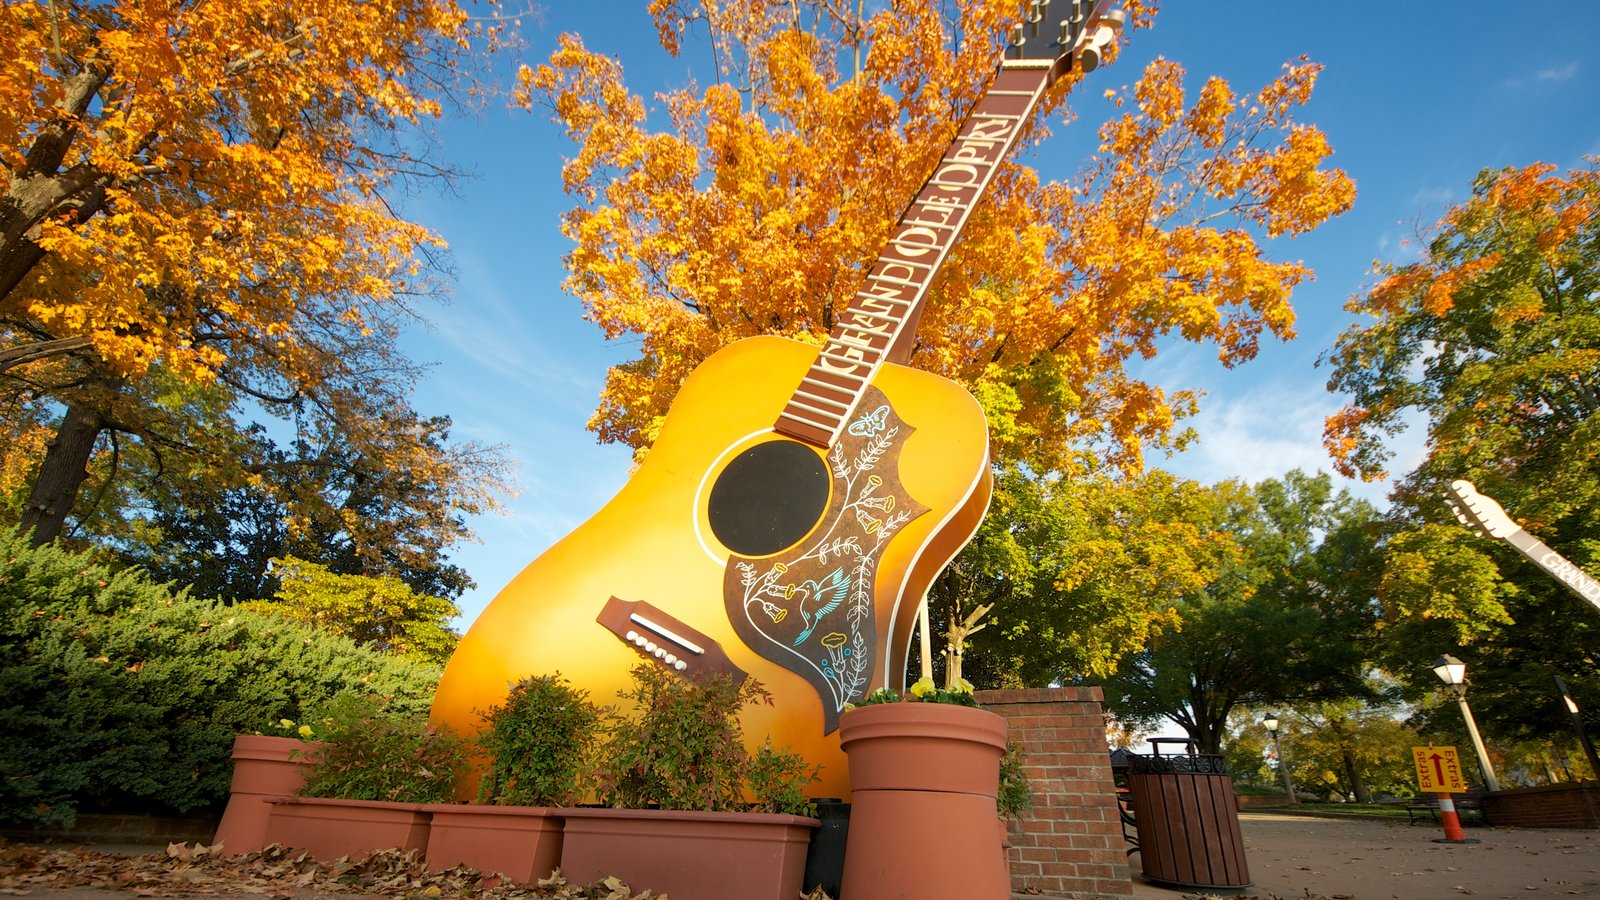 Grand Ole Opry featuring a garden and autumn leaves